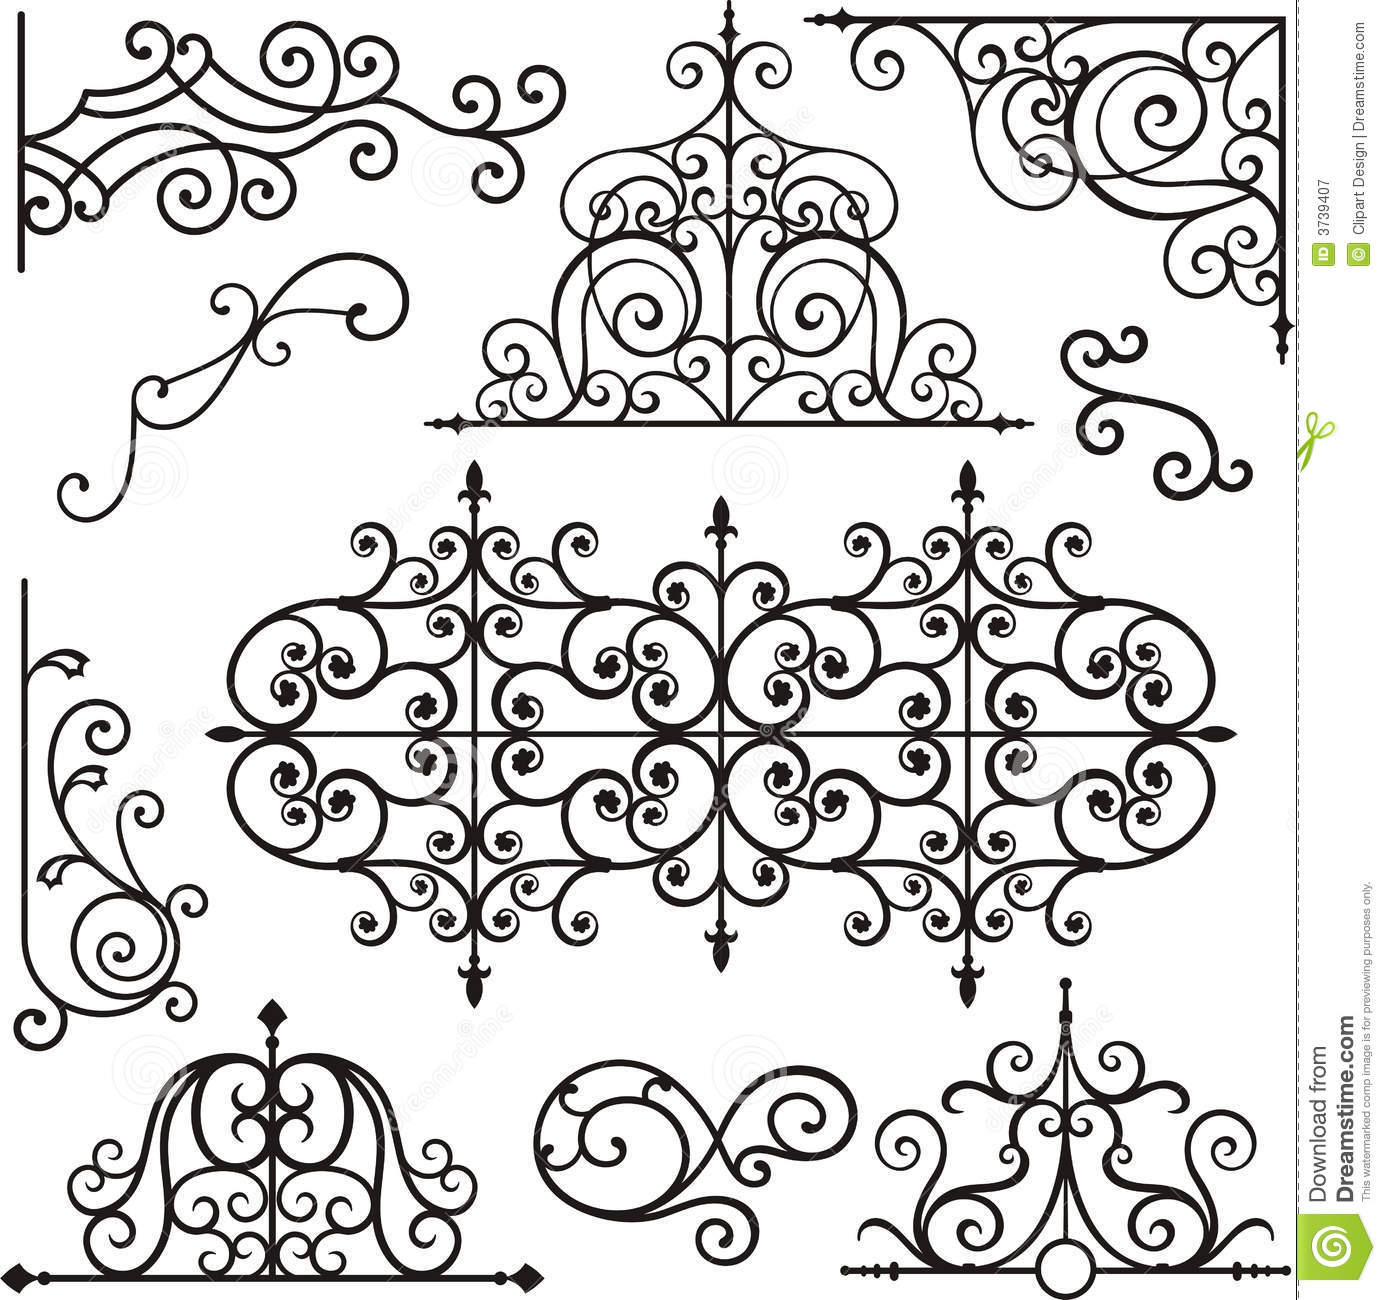 Wrough iron ornaments stock vector. Image of craft